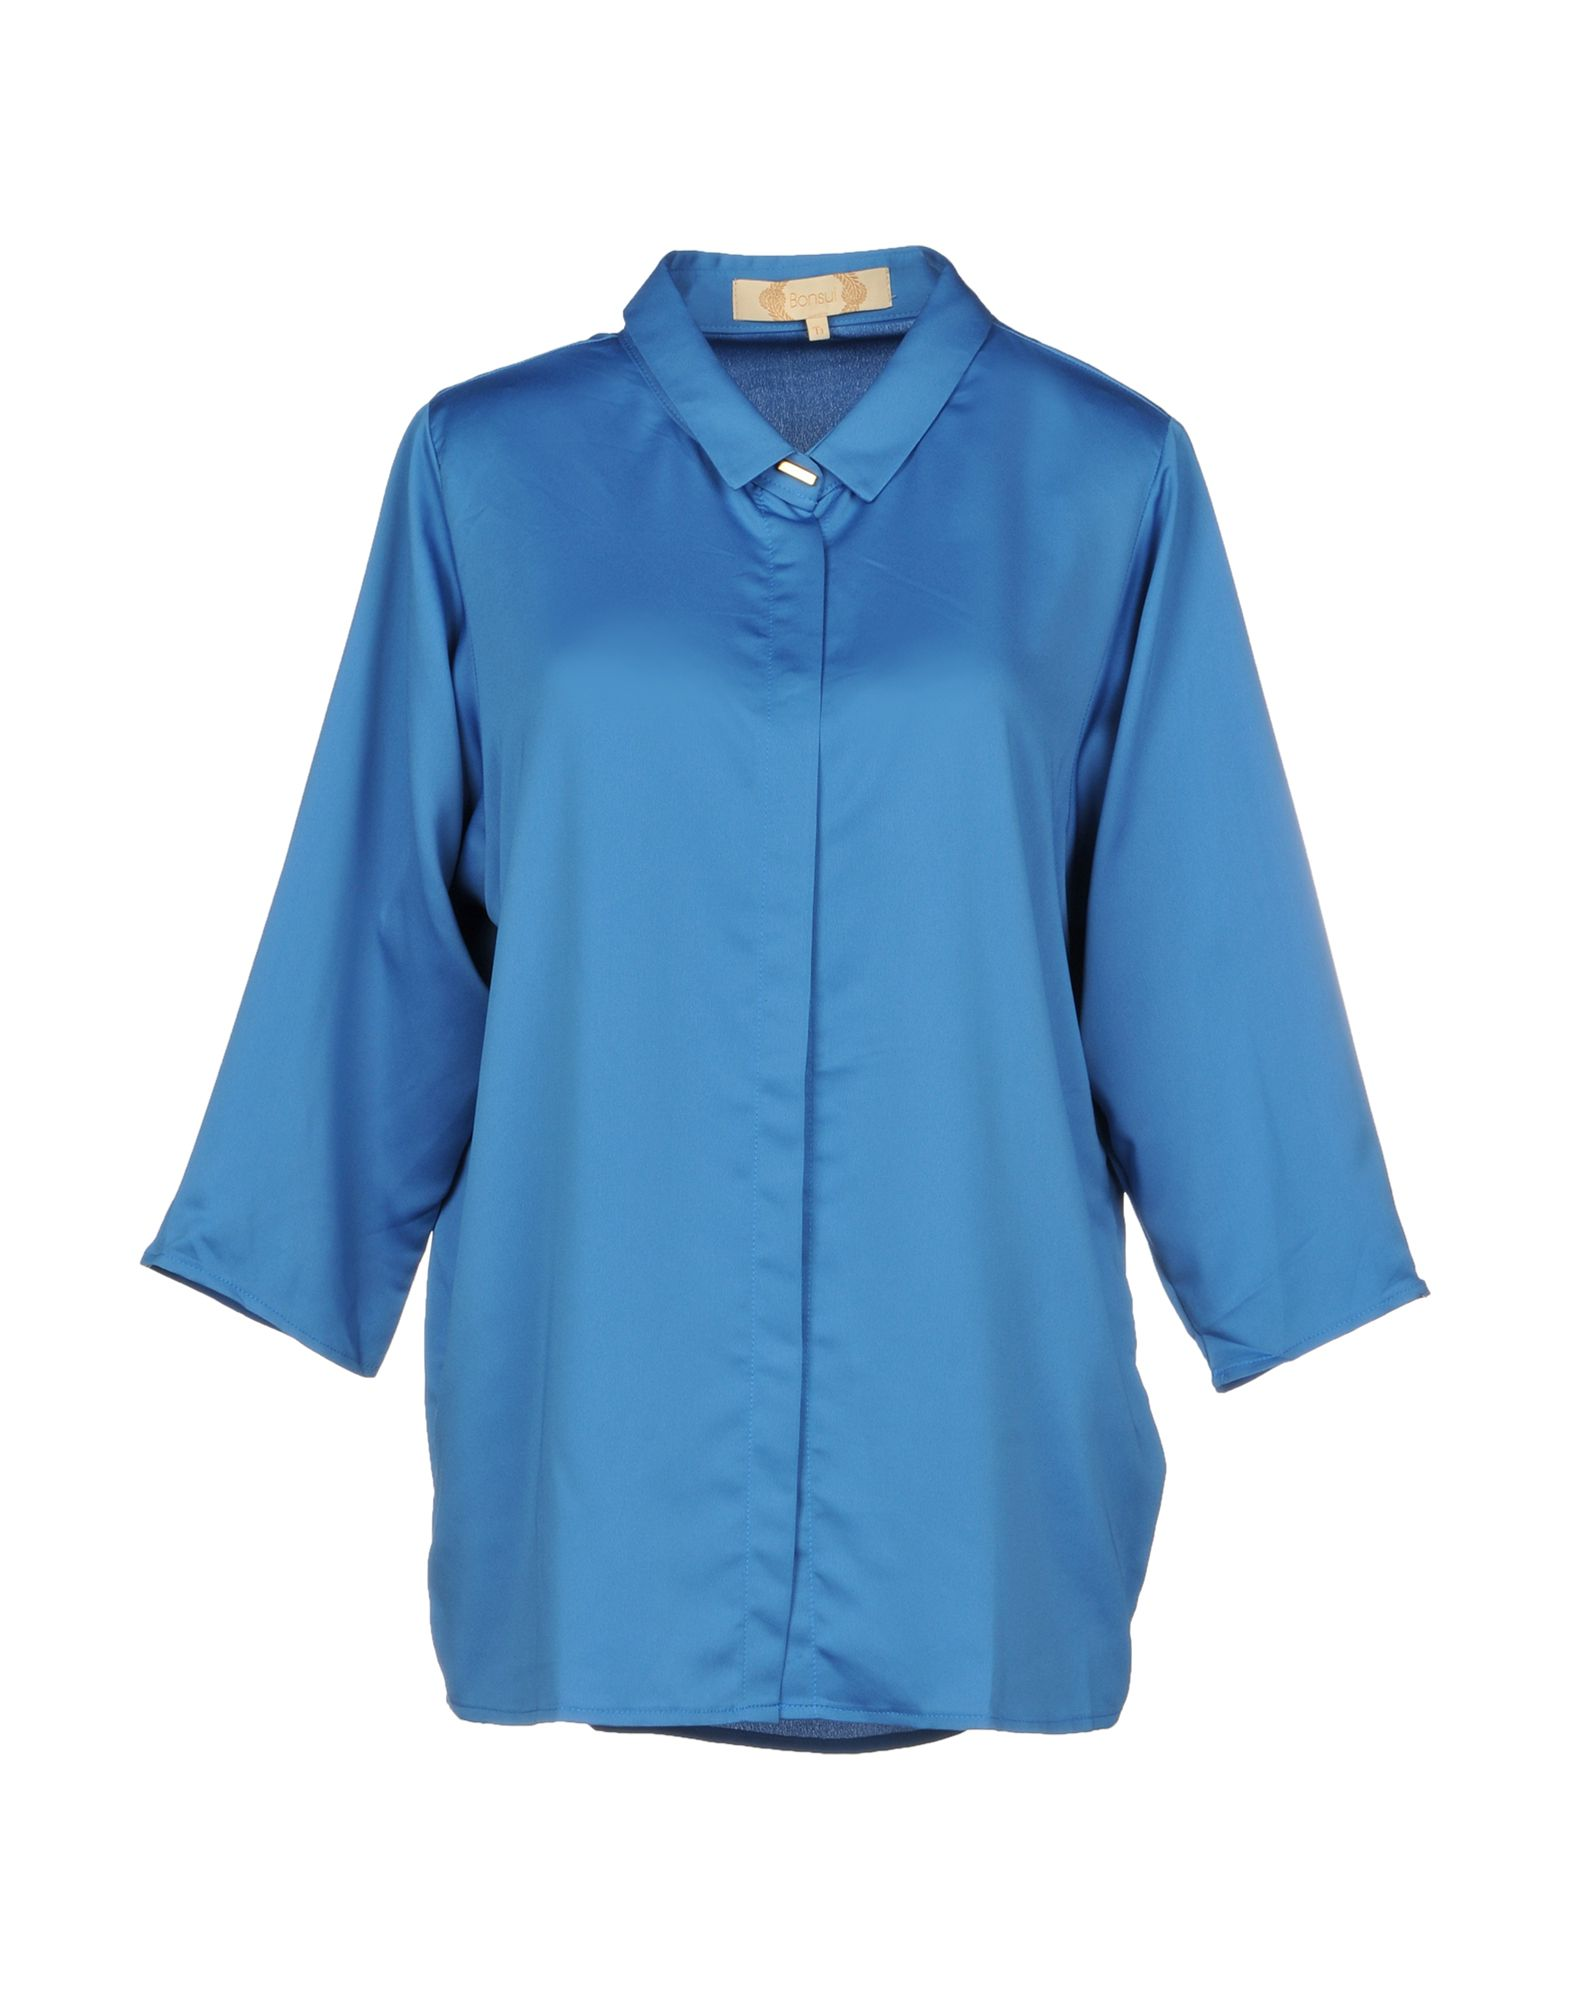 BONSUI Solid Color Shirts & Blouses in Azure